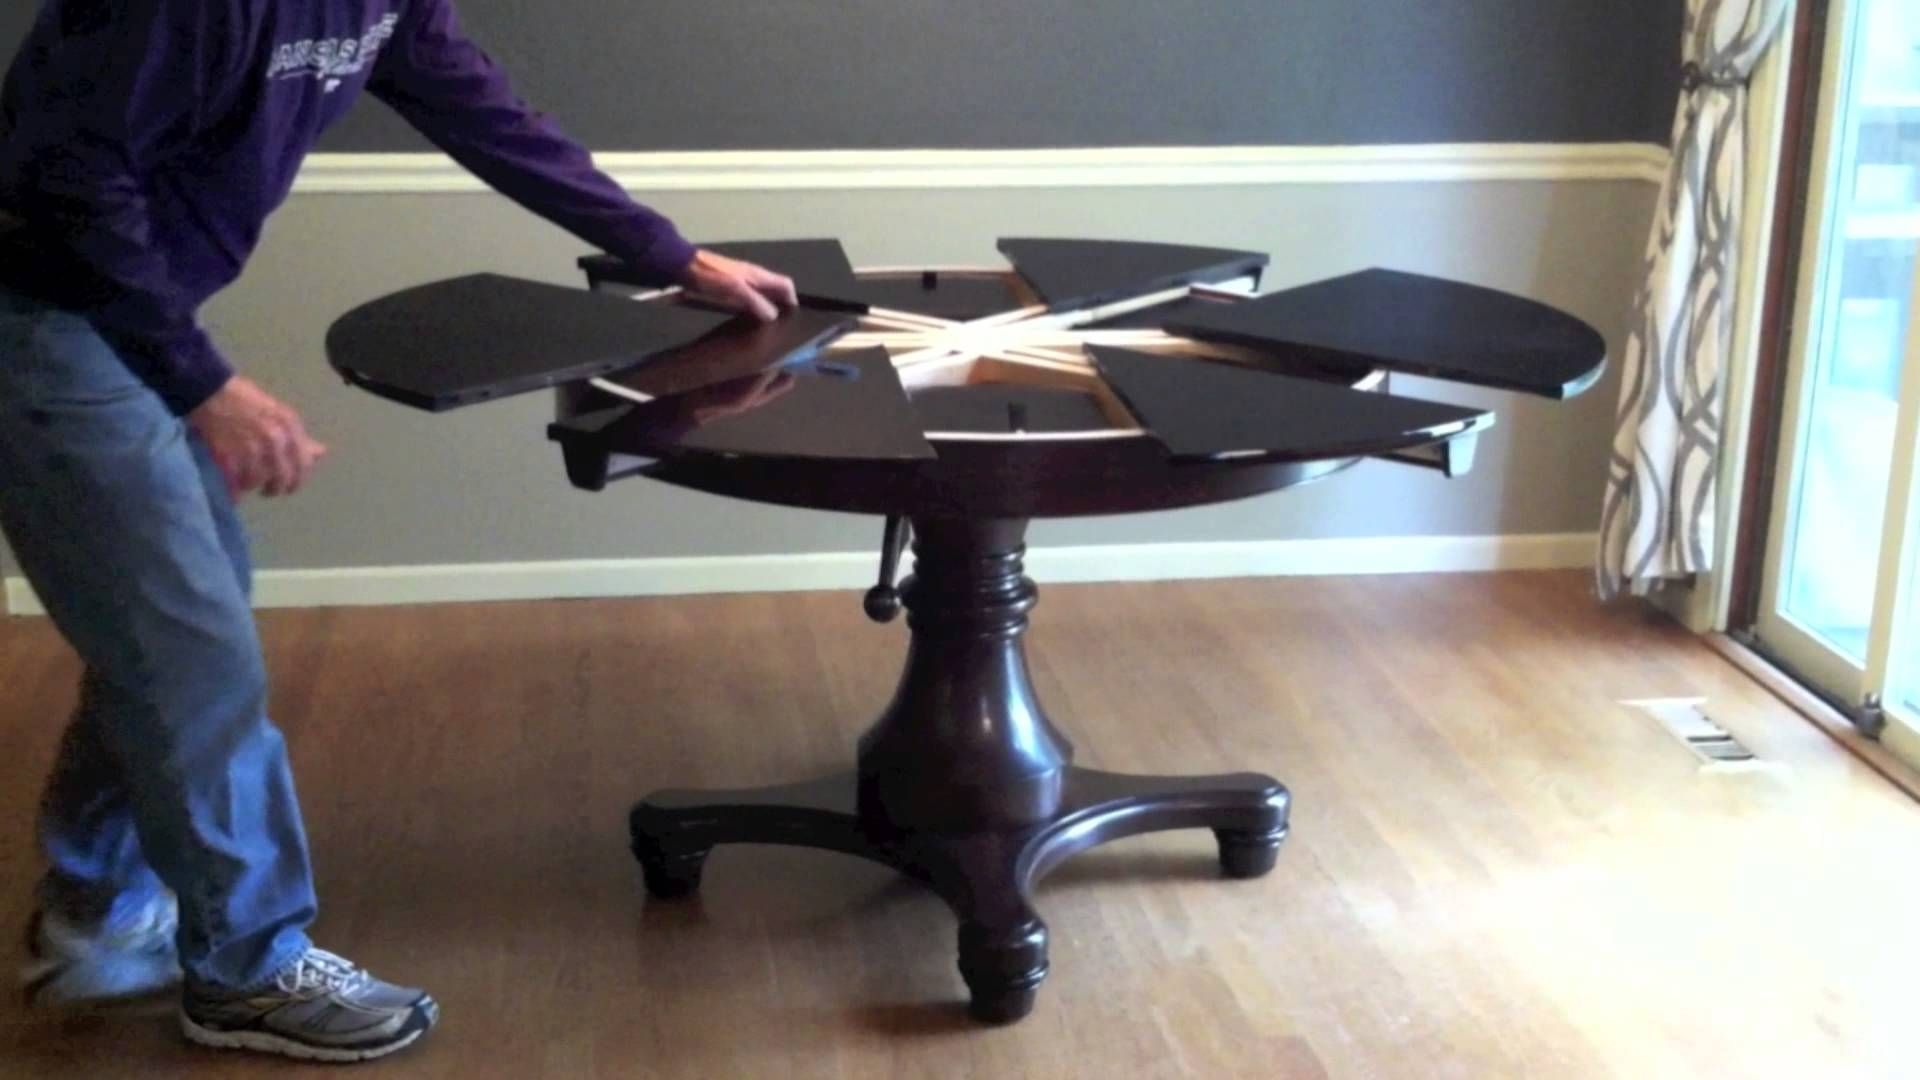 Unique Expanding Round Table Becomes Oval | me & Furnitures ...